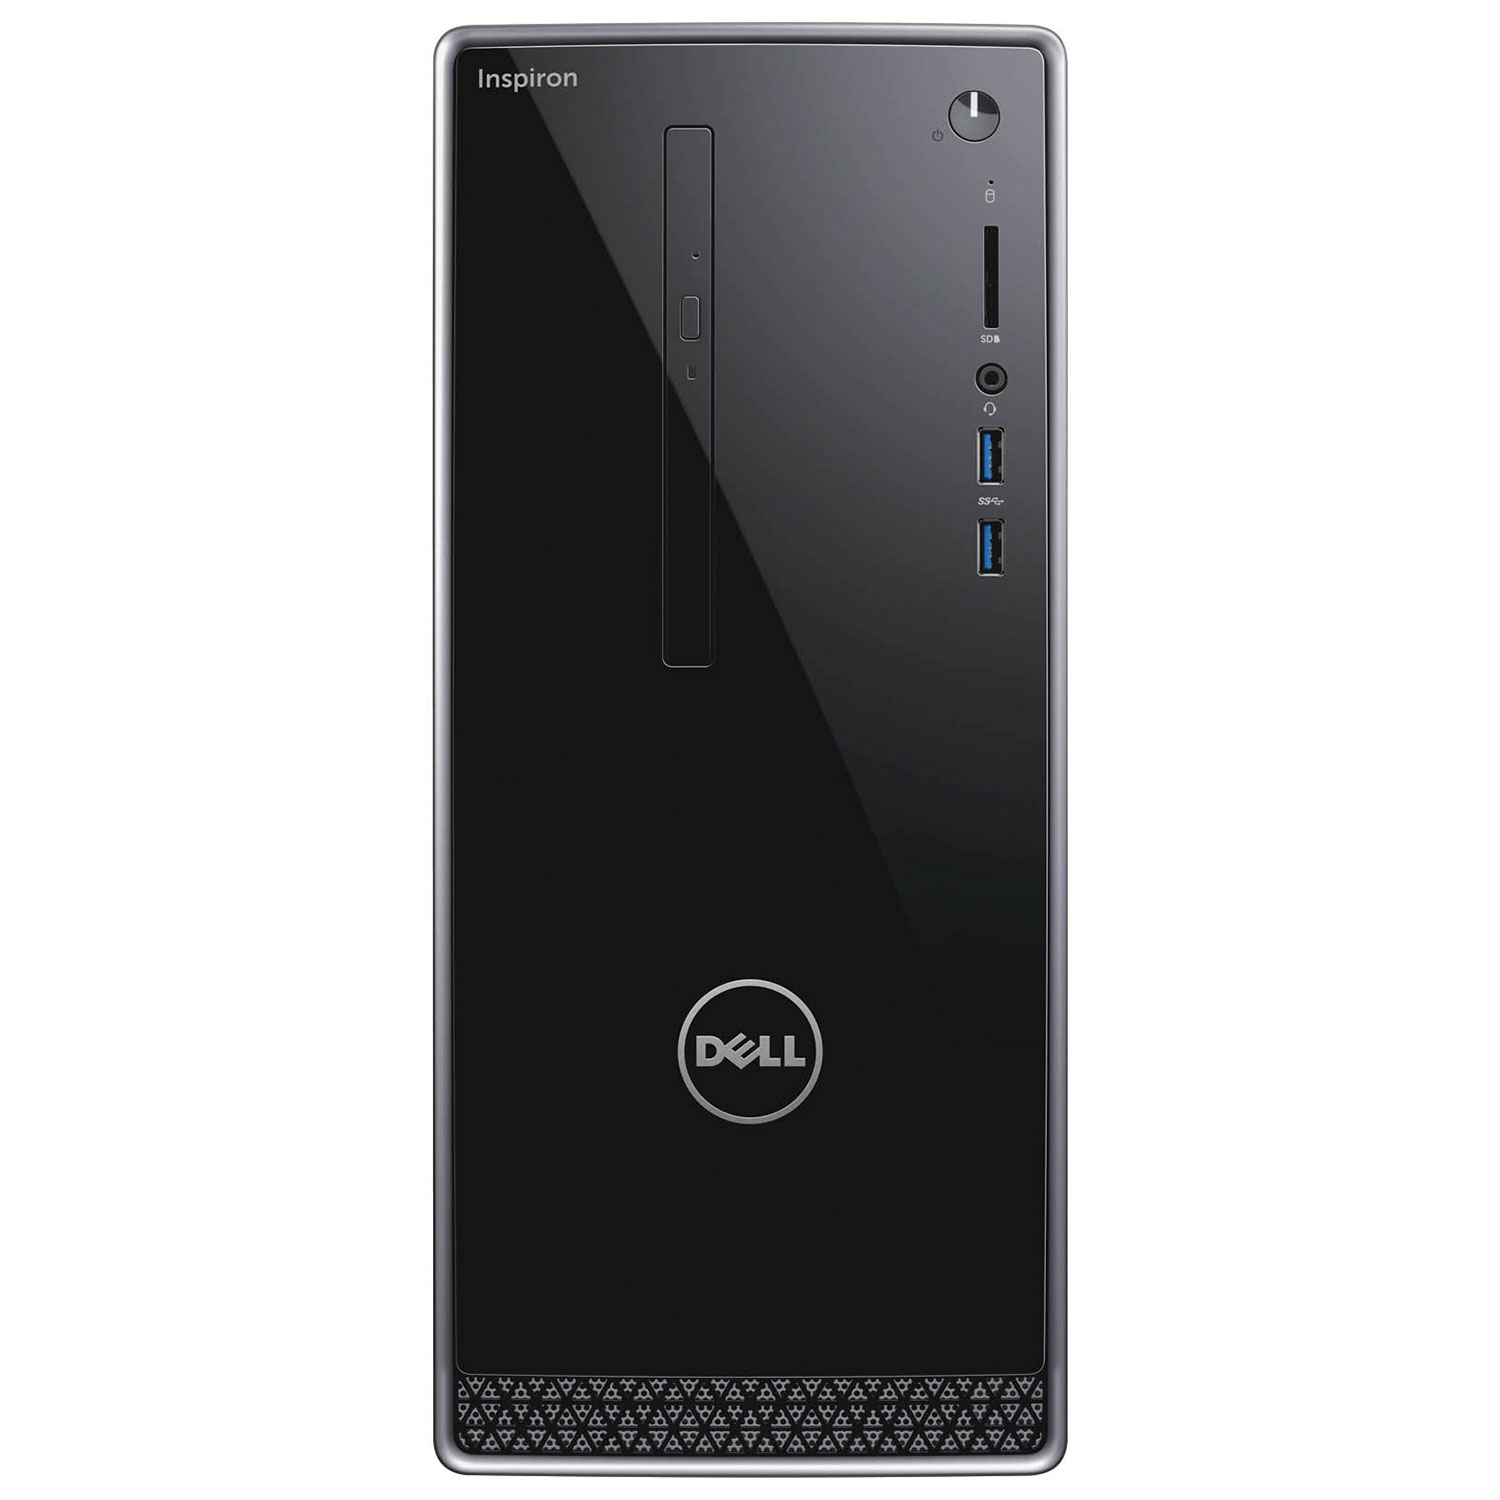 Dell Inspiron Desktop PC